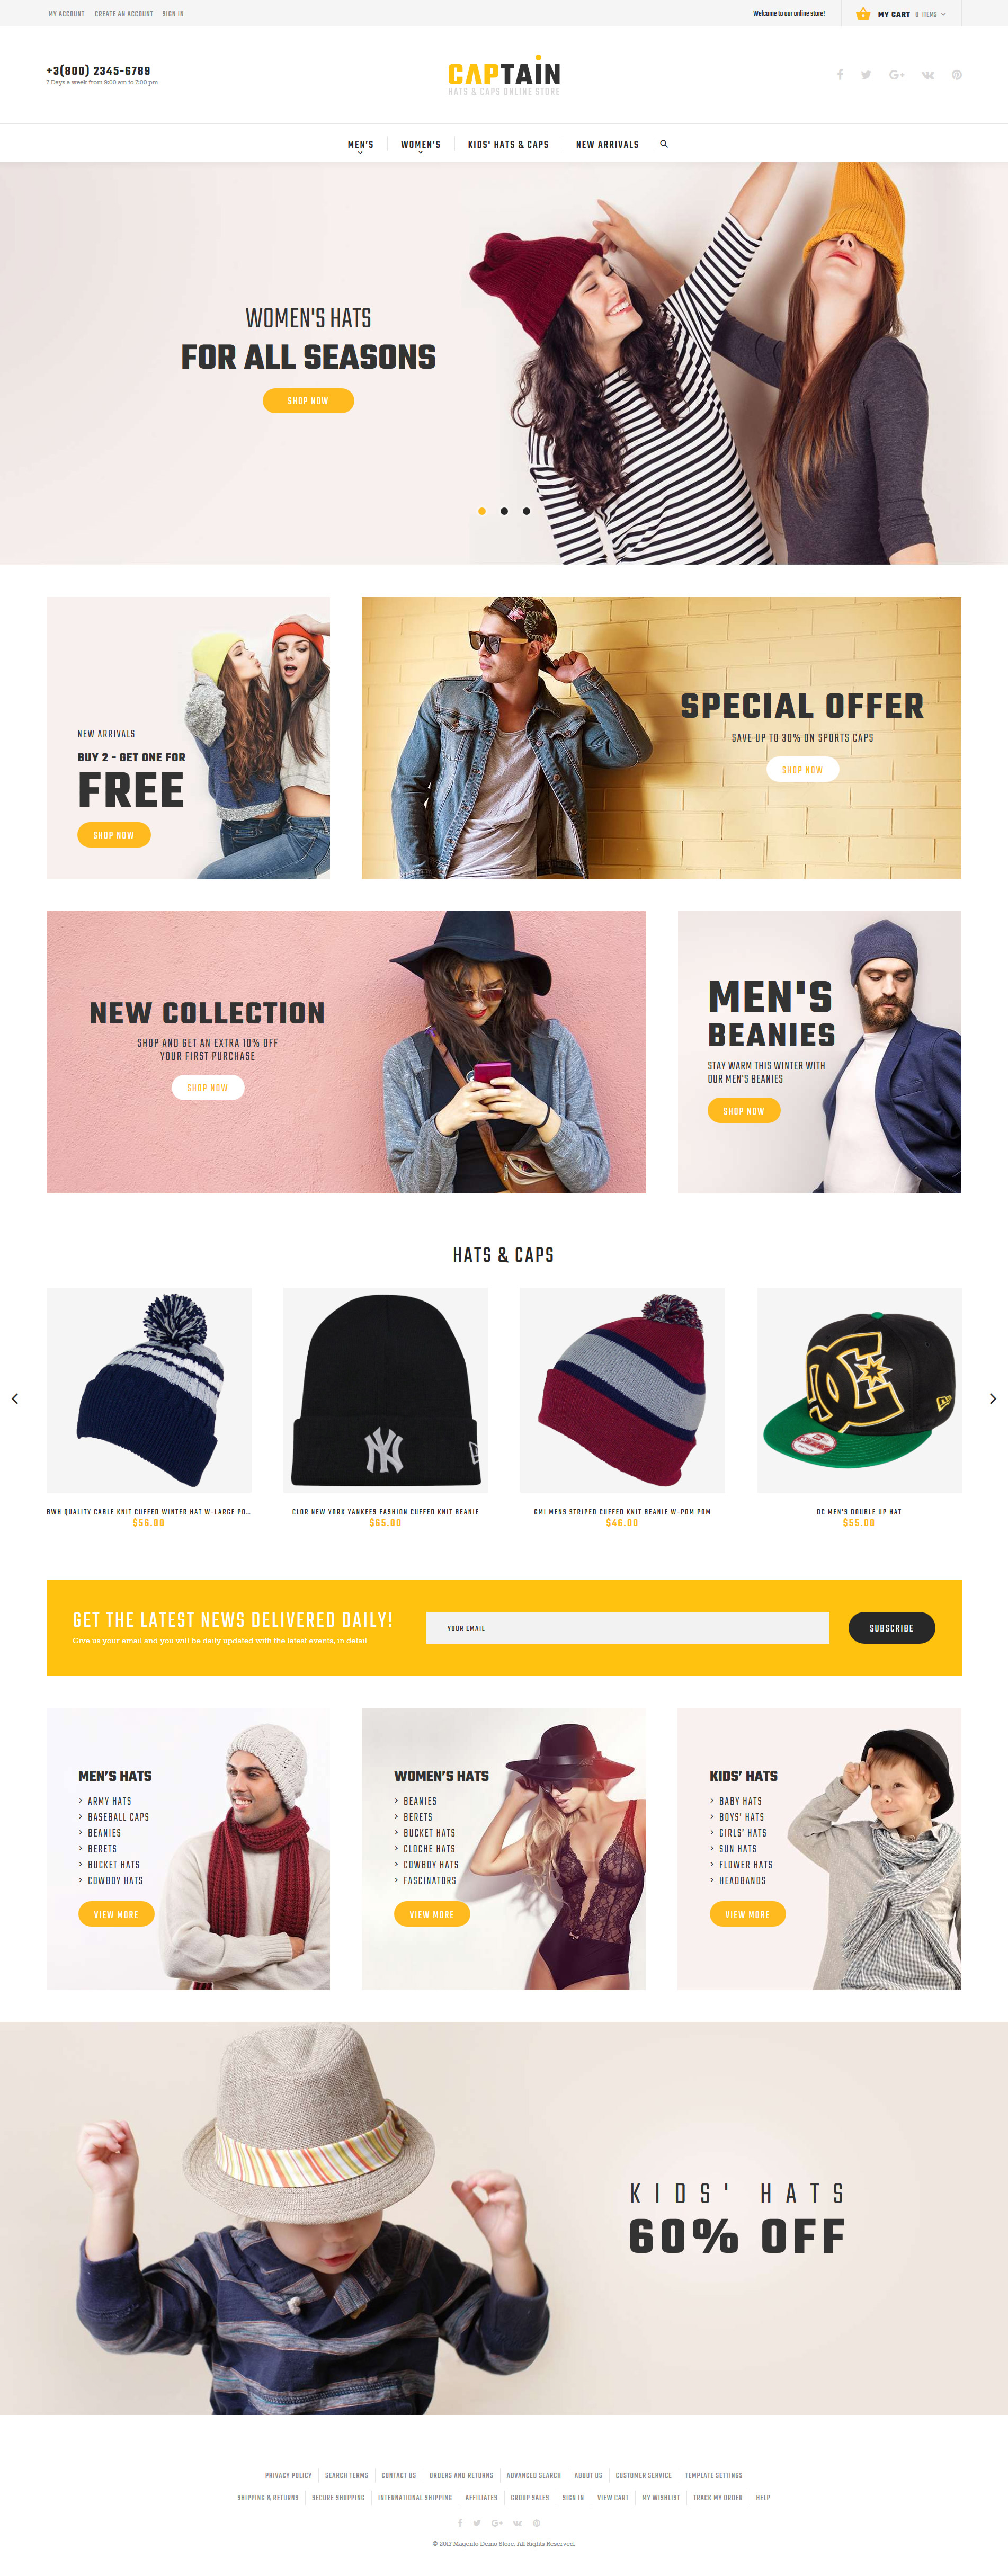 Captain - Hats and Caps Online Store №62084 - скриншот